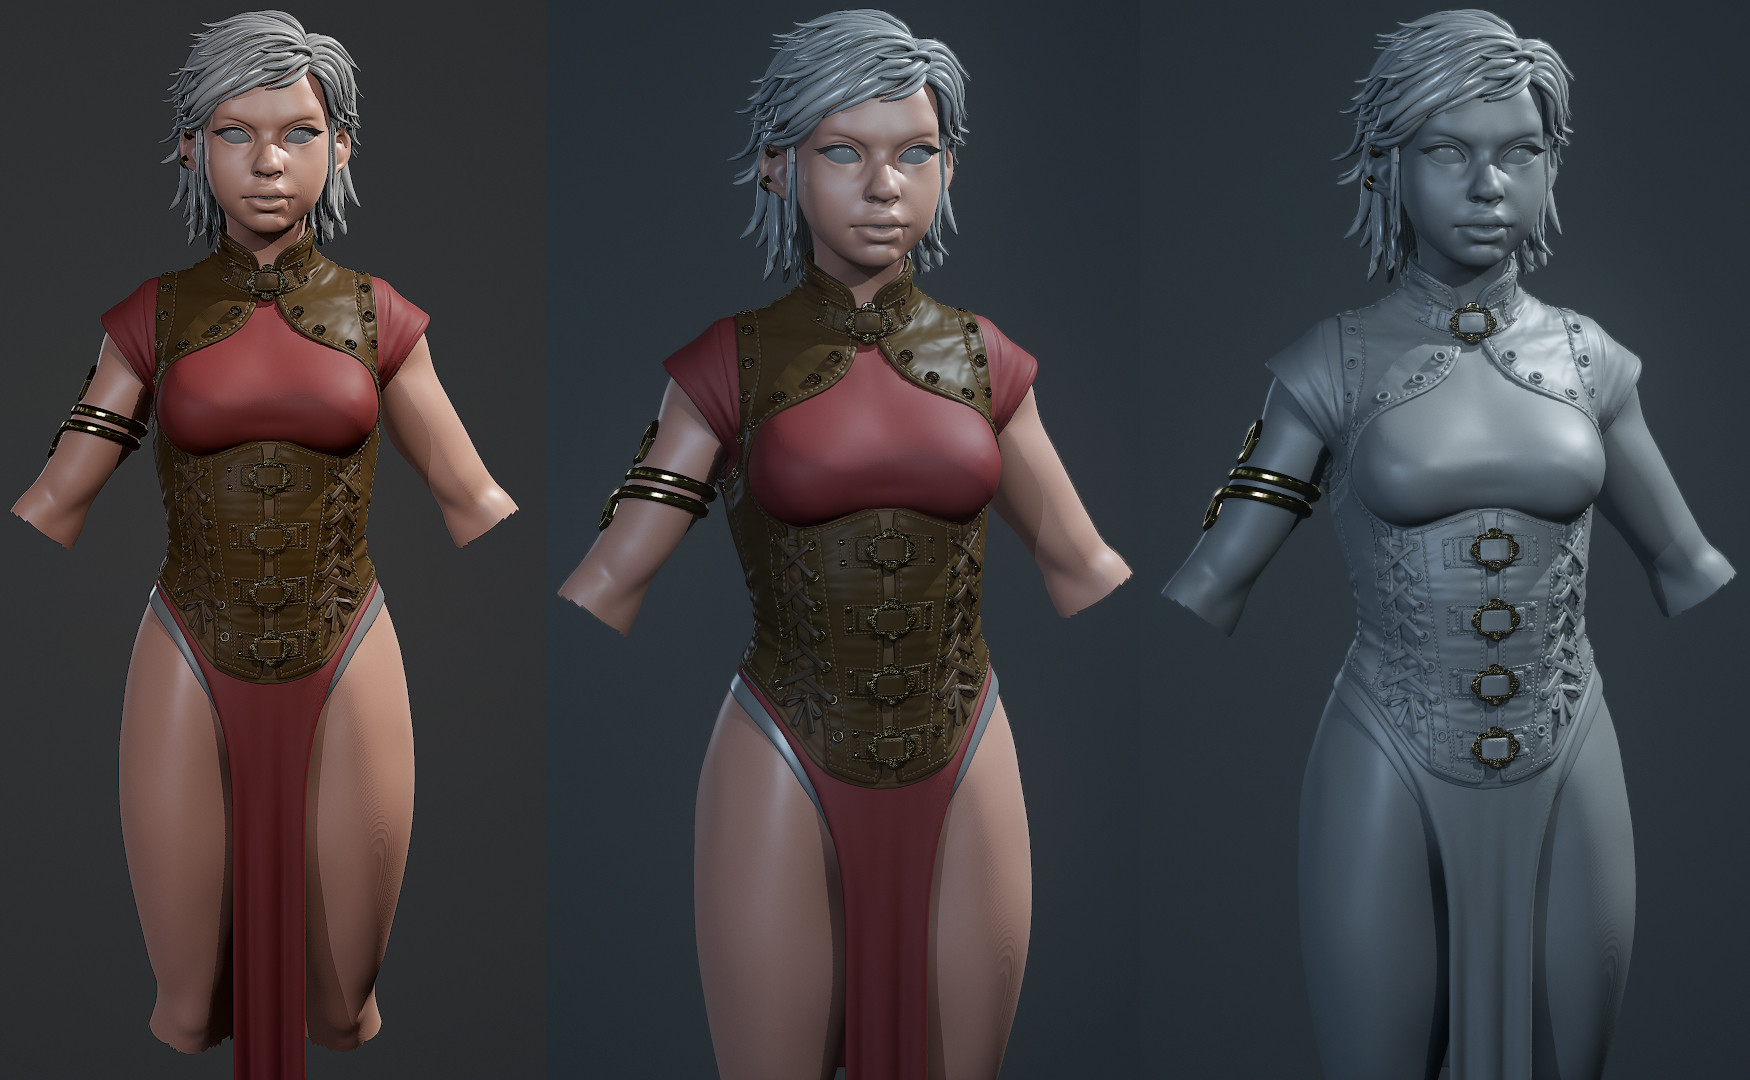 Test renders of armor in Toolbag 3